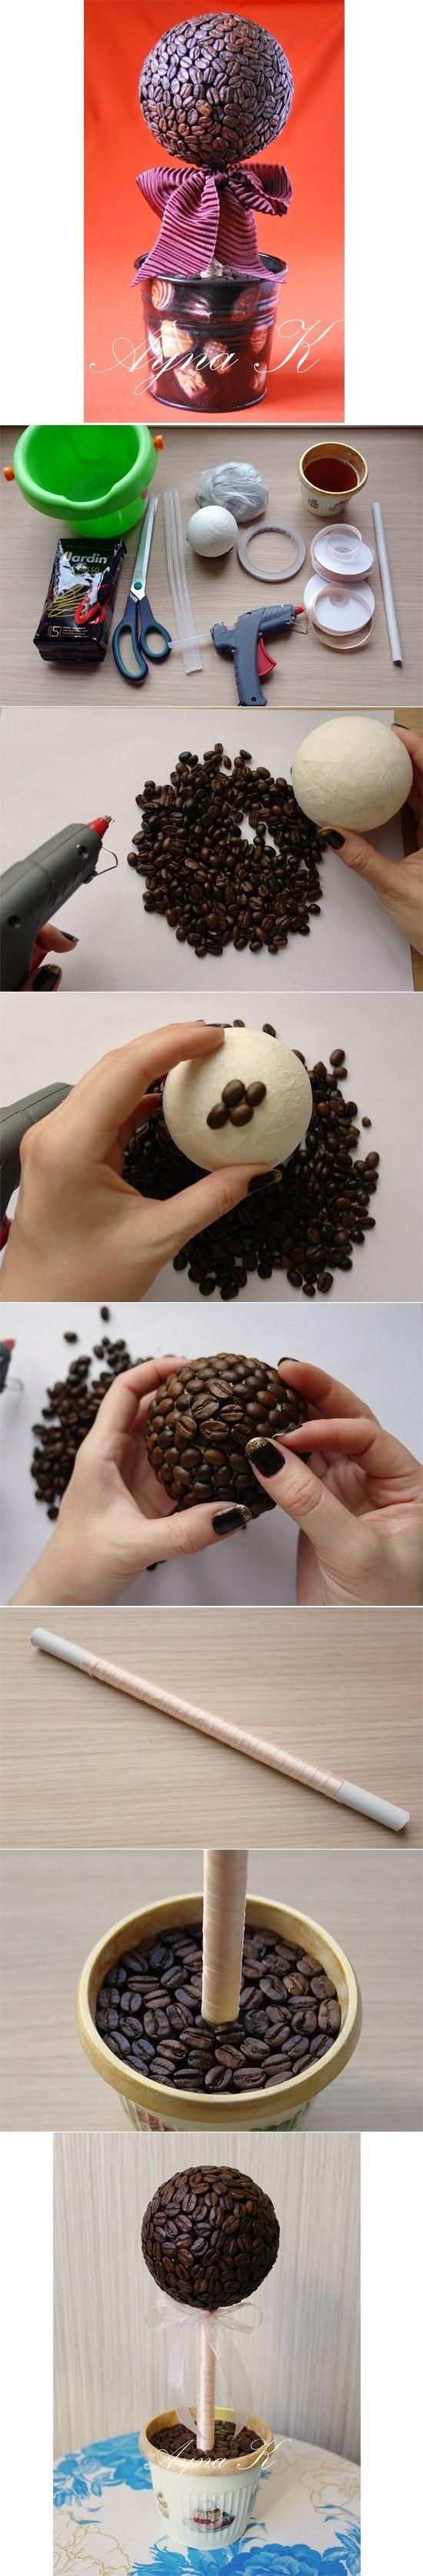 DIY Coffee Tree Ornament - this would smell so good! I like the top but not the rest.